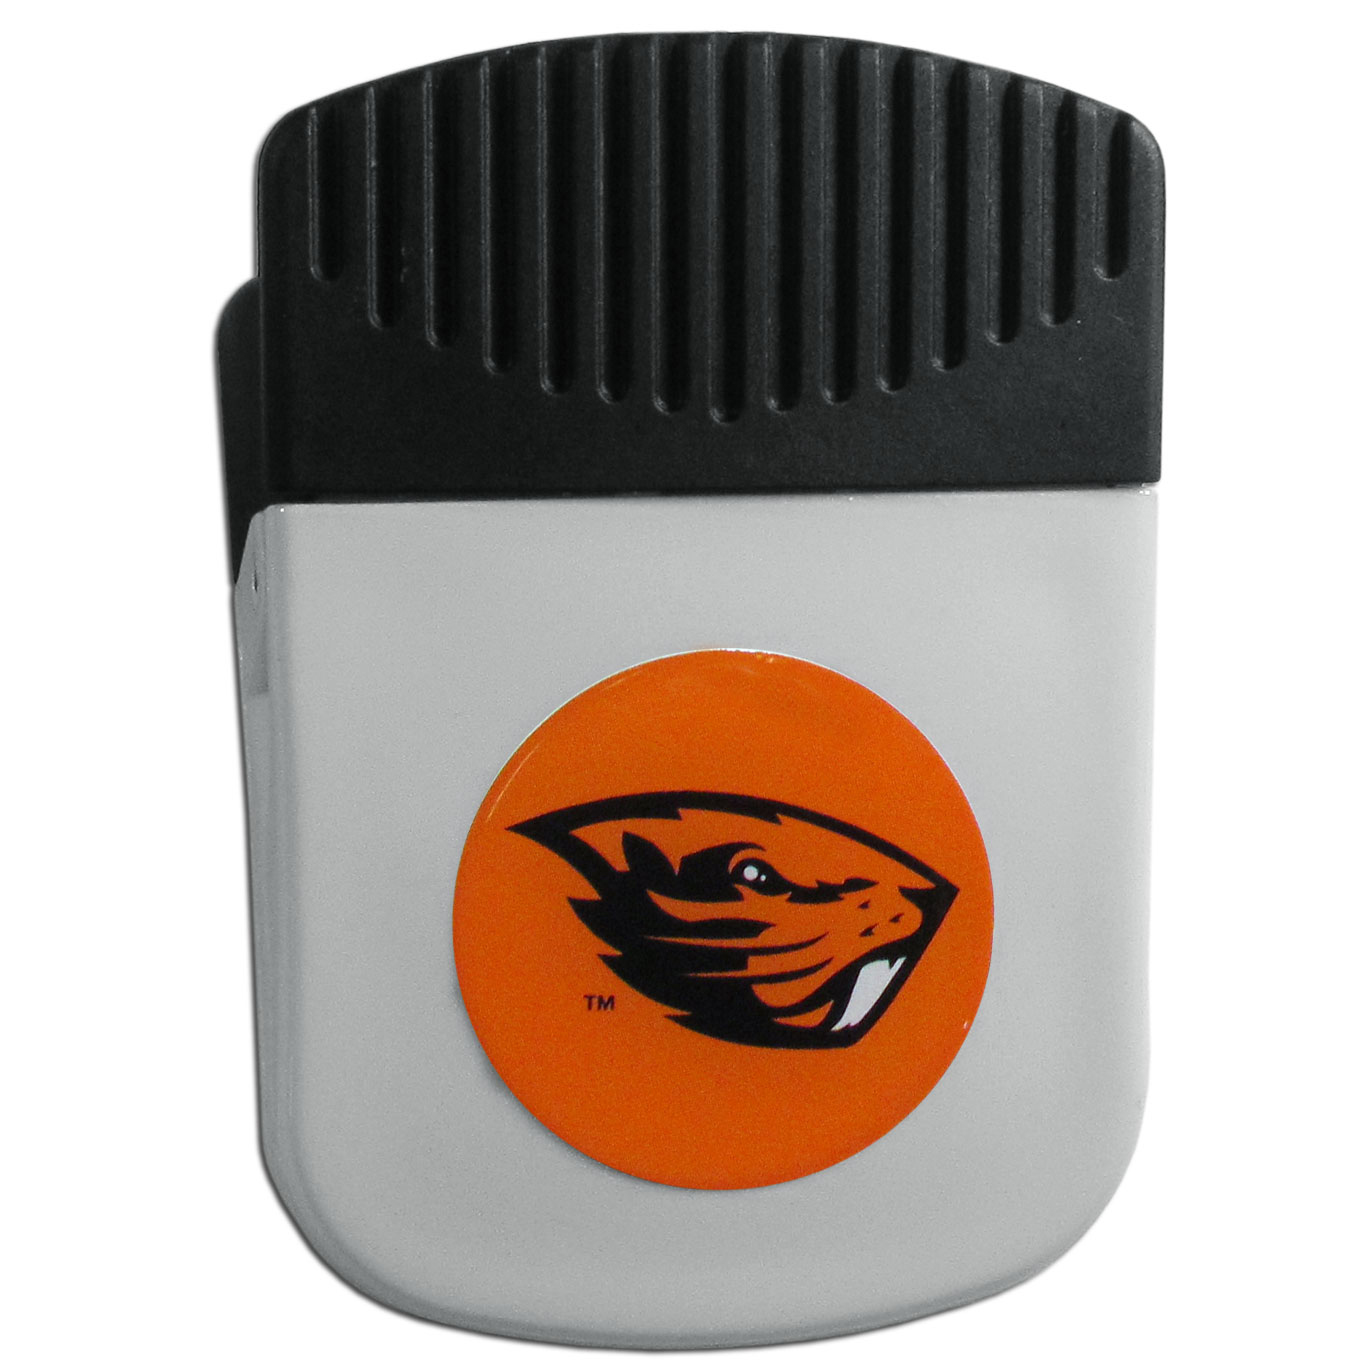 Oregon St. Beavers Chip Clip Magnet - Use this attractive clip magnet to hold memos, photos or appointment cards on the fridge or take it down keep use it to clip bags shut. The magnet features a domed Oregon St. Beavers logo.